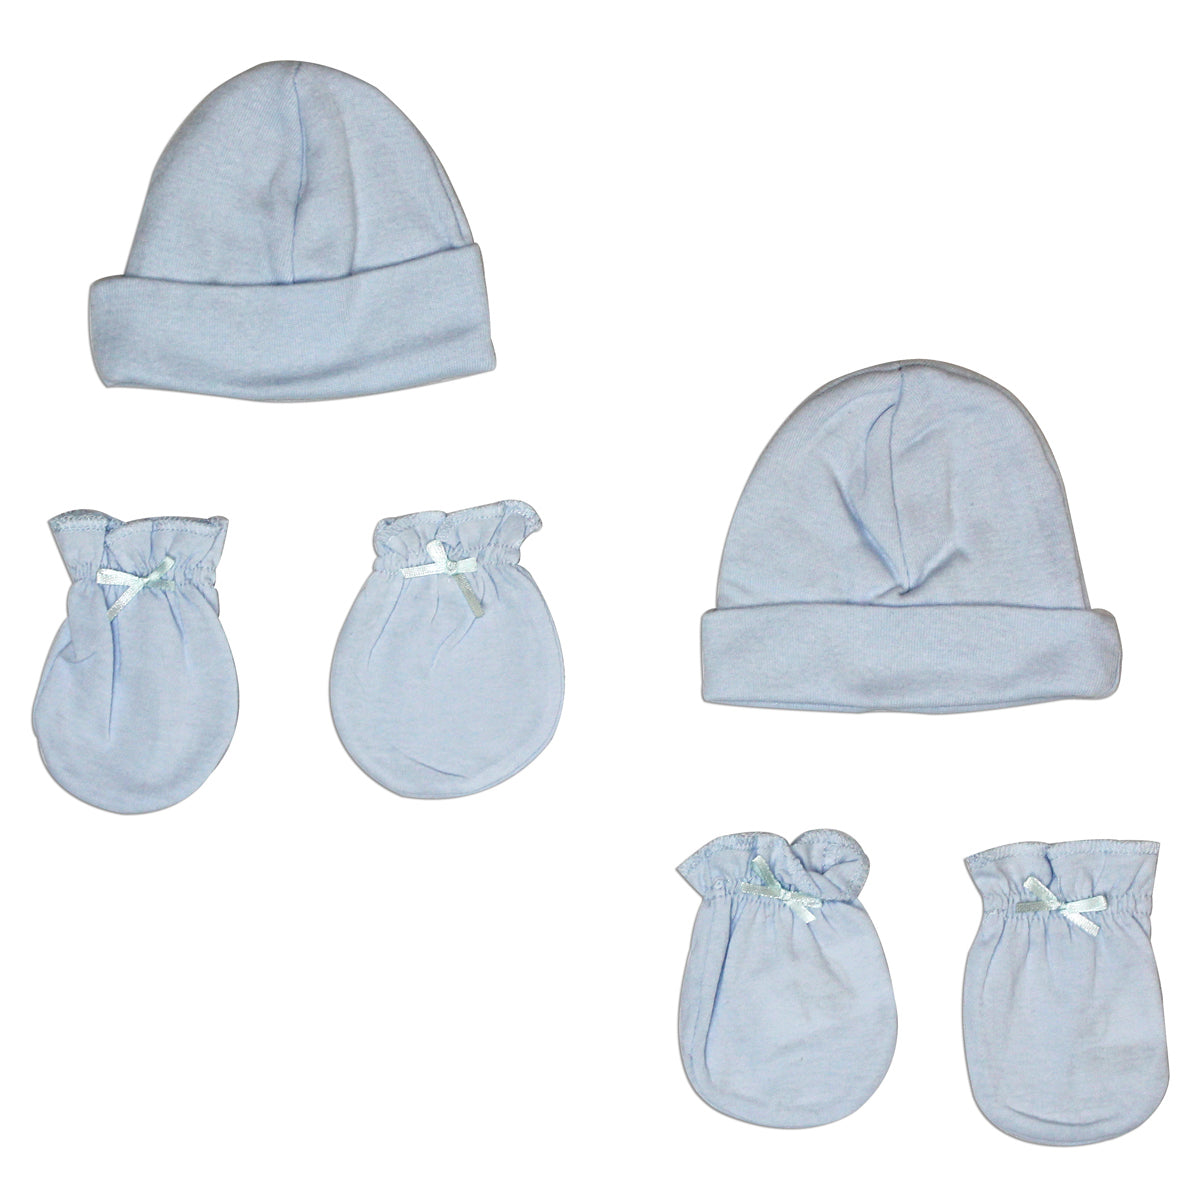 Boys' Cap and Mittens 4 Piece Layette Set